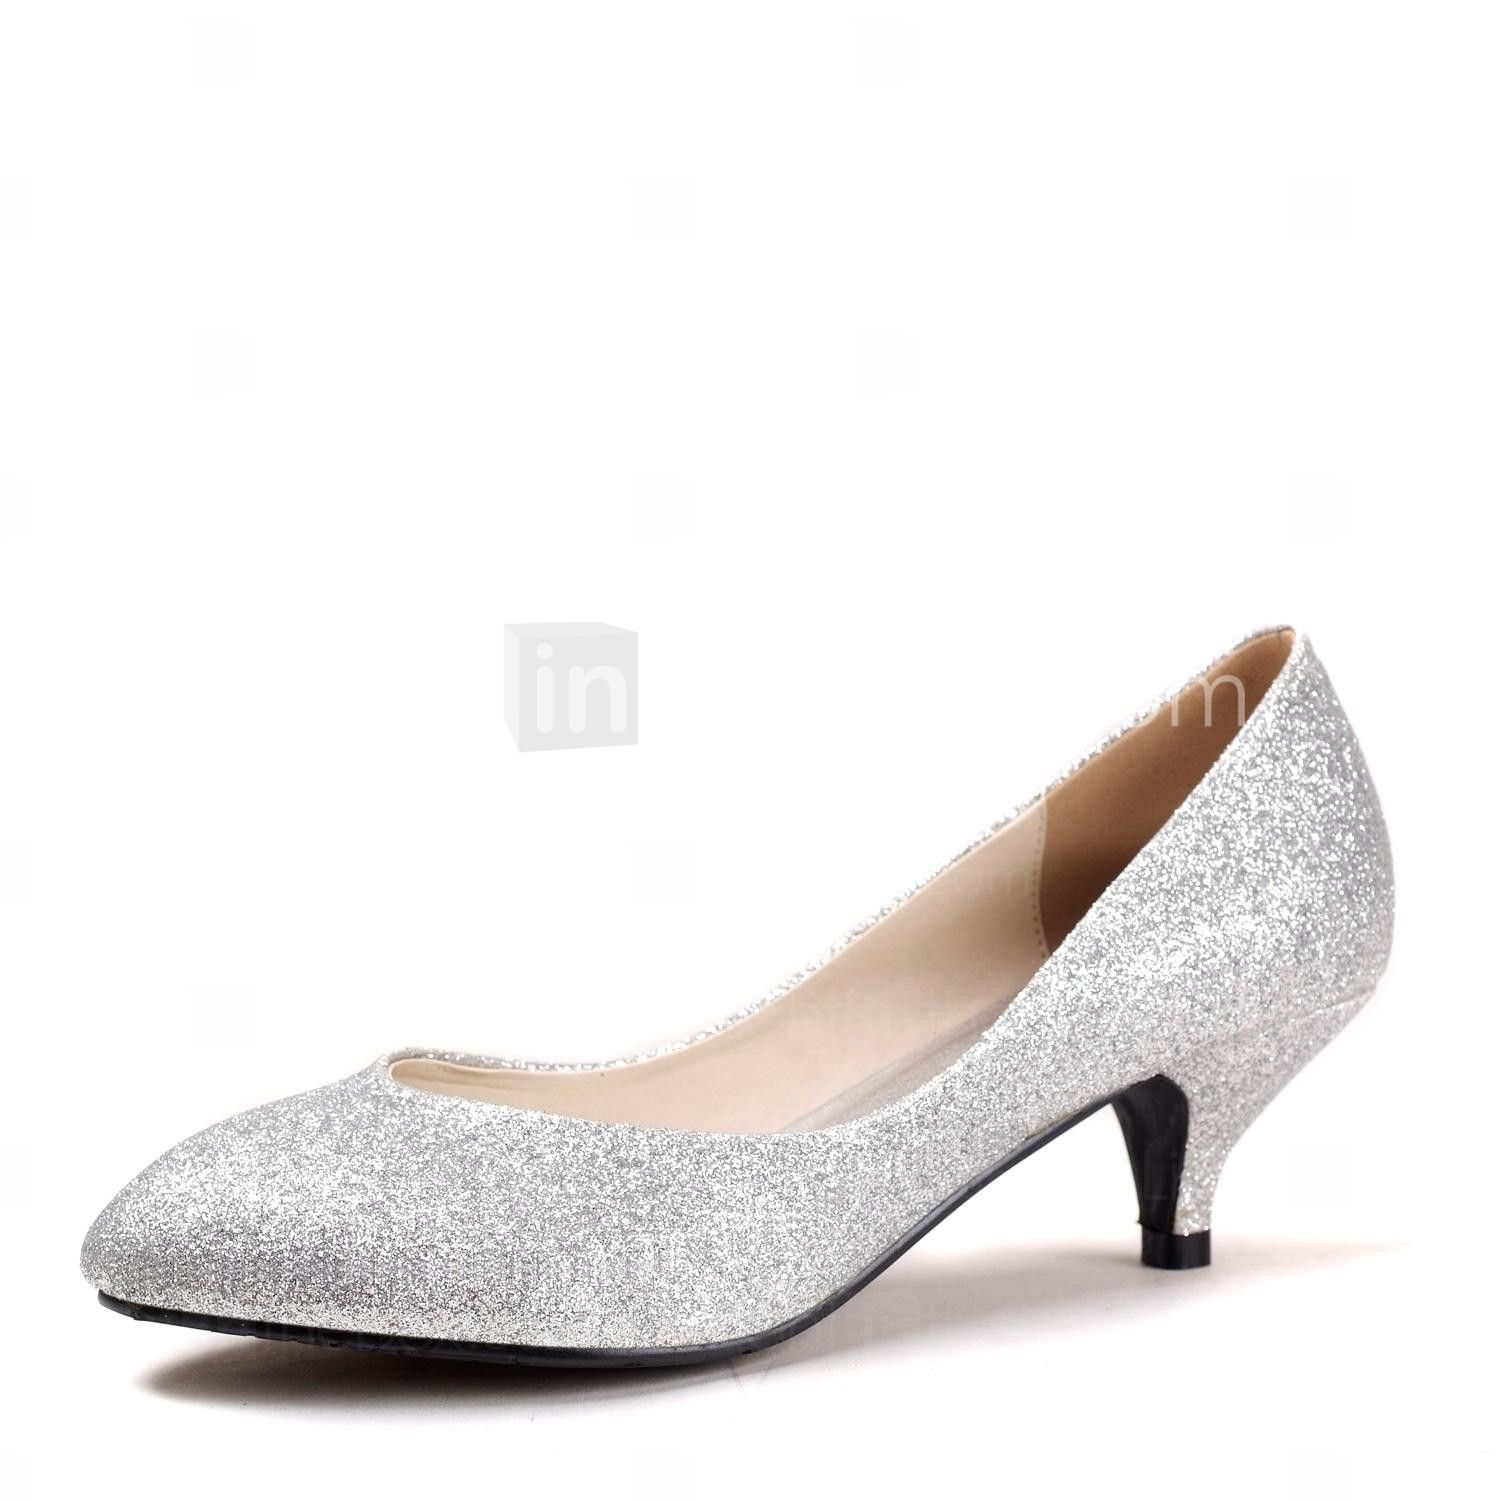 22da28174c5a Women s Shoes Pointed Toe Kitten Heel Wedding Shoes More Colors available -  USD   24.79